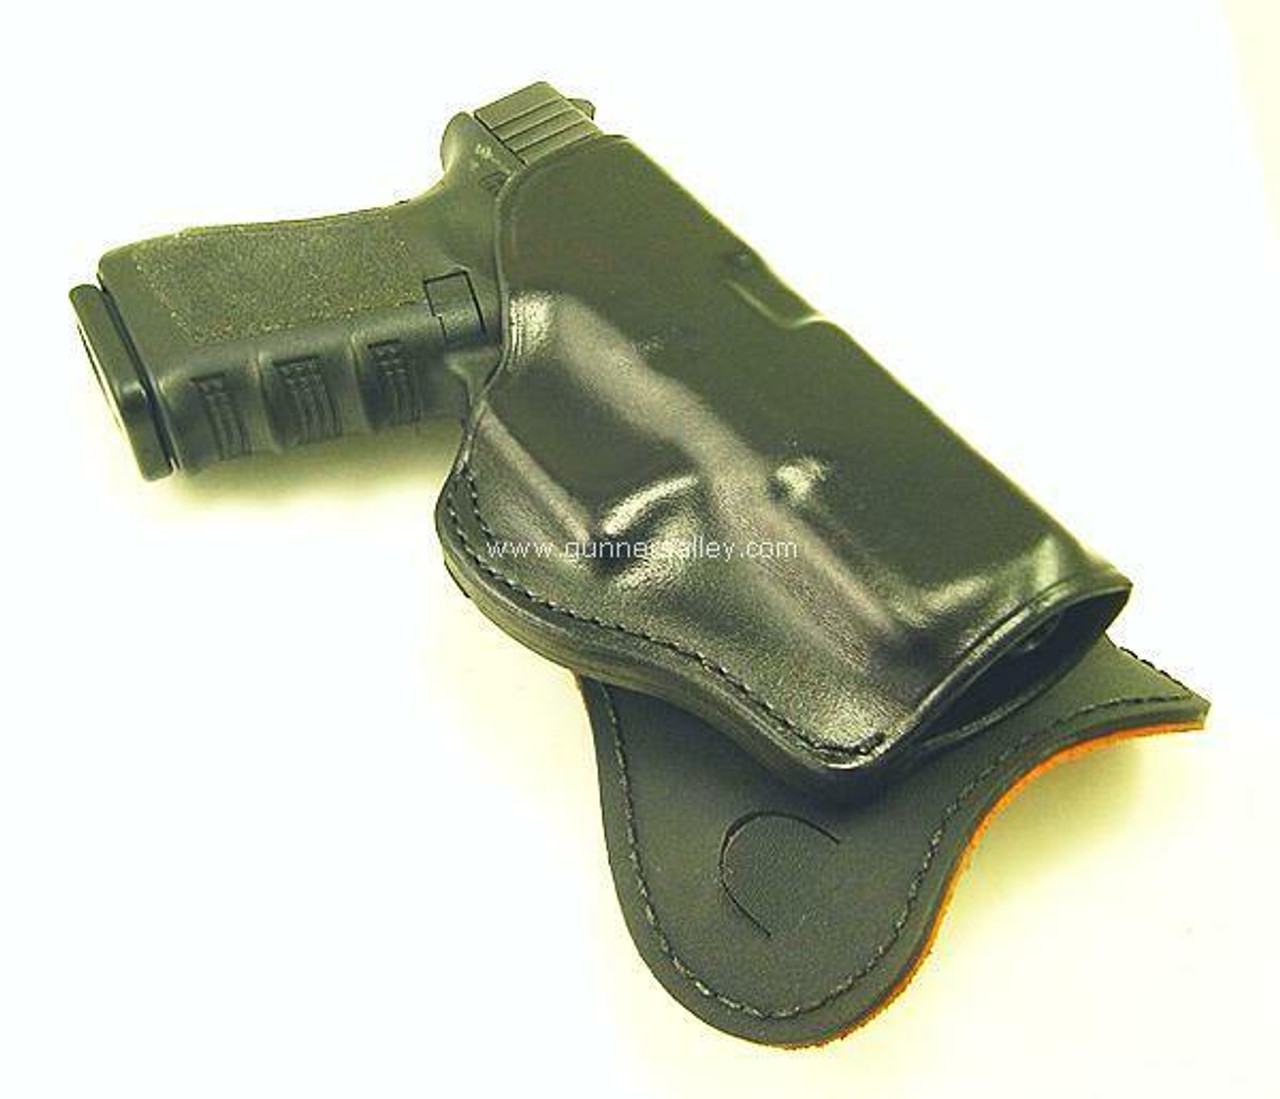 Black - Profile View - Shown with a Glock 19 for Demonstration Purposes